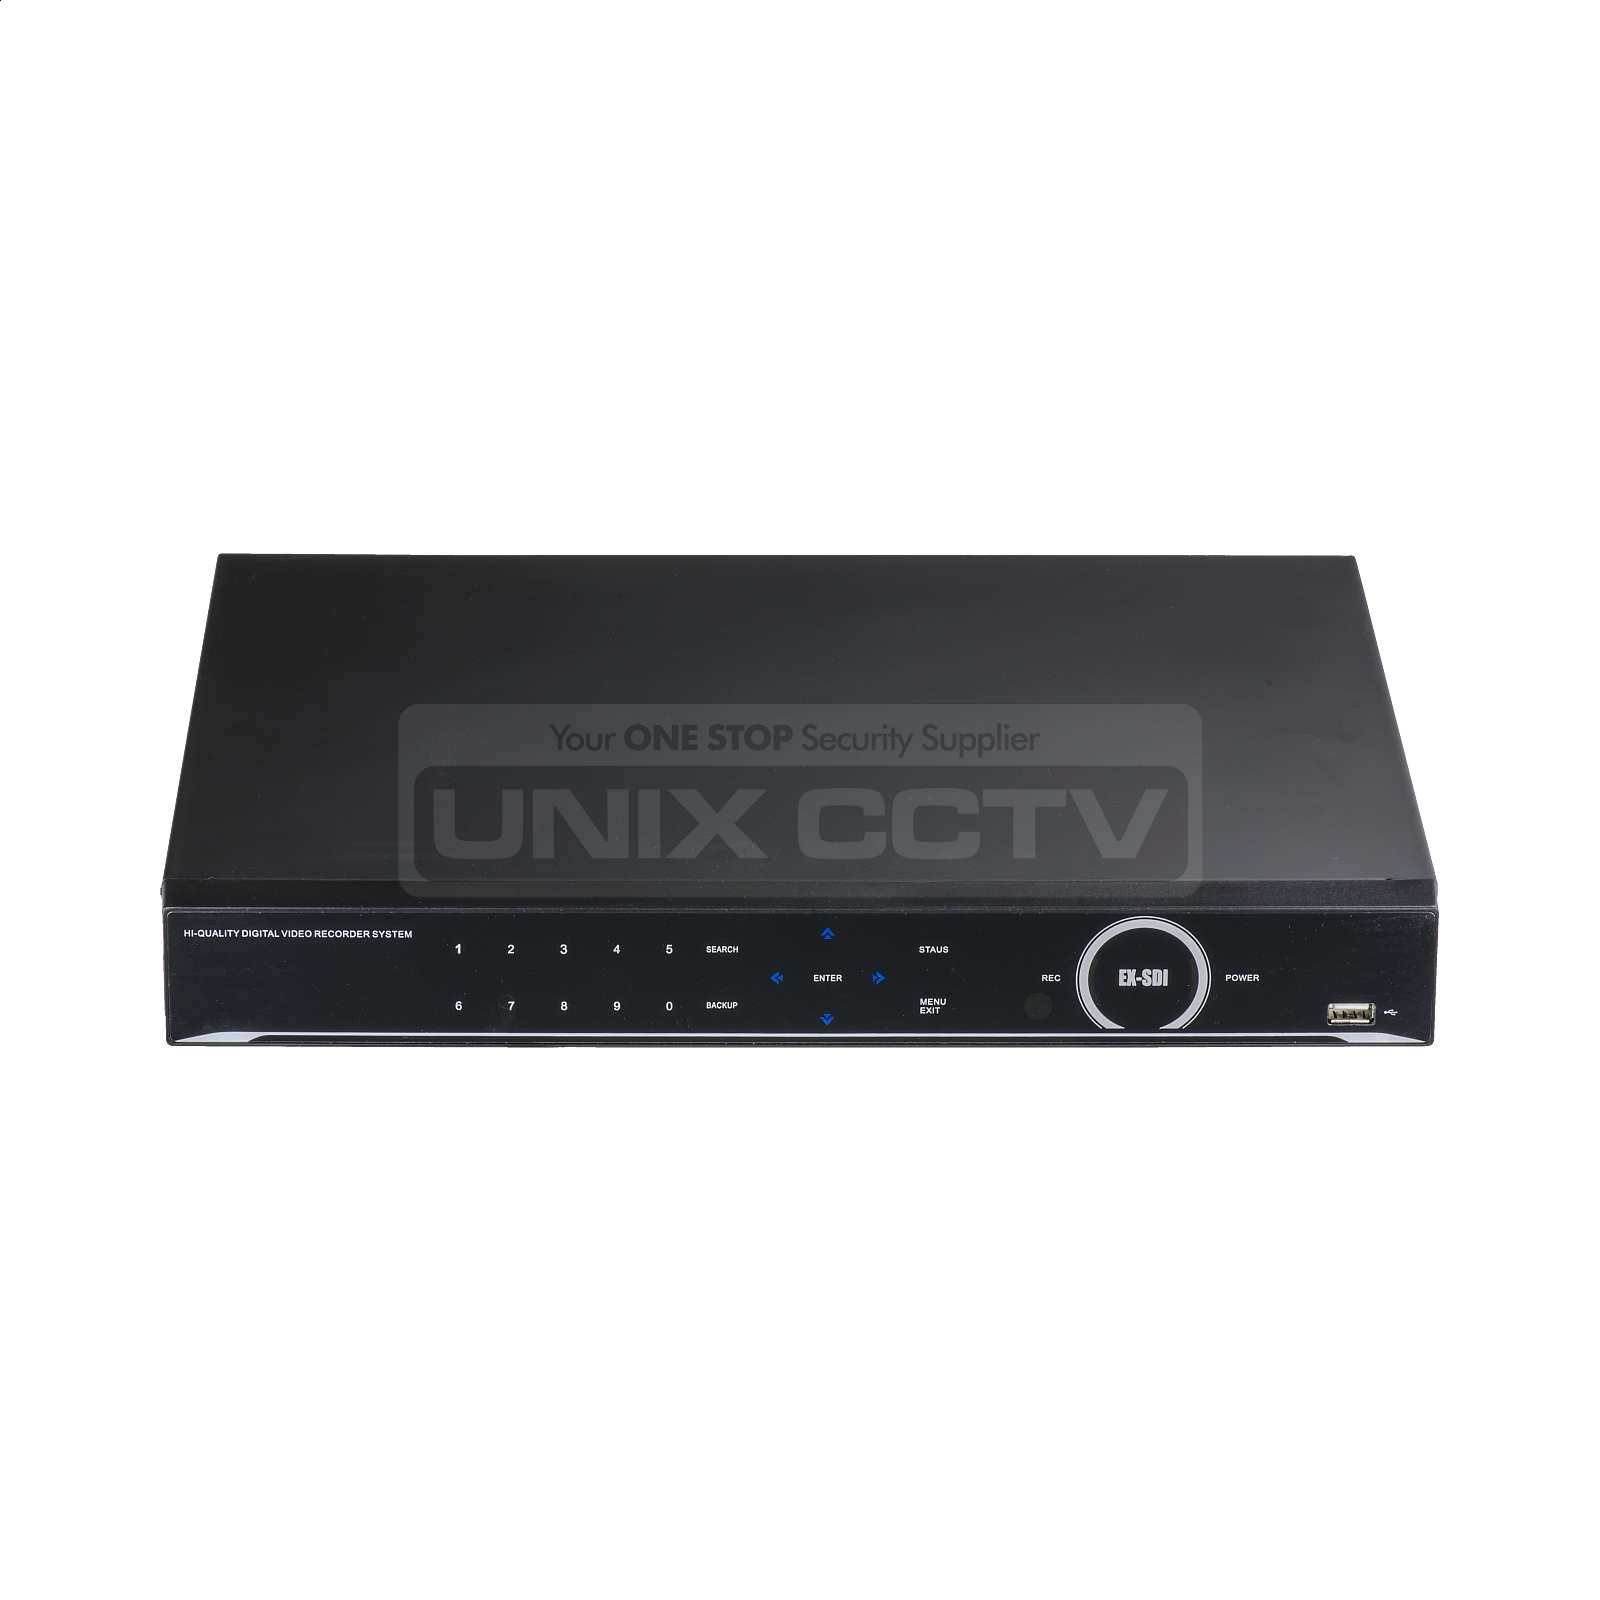 Magic QX Series | 16CH Octa-brid DVR System, H 265, 4K Output, 2 HDD